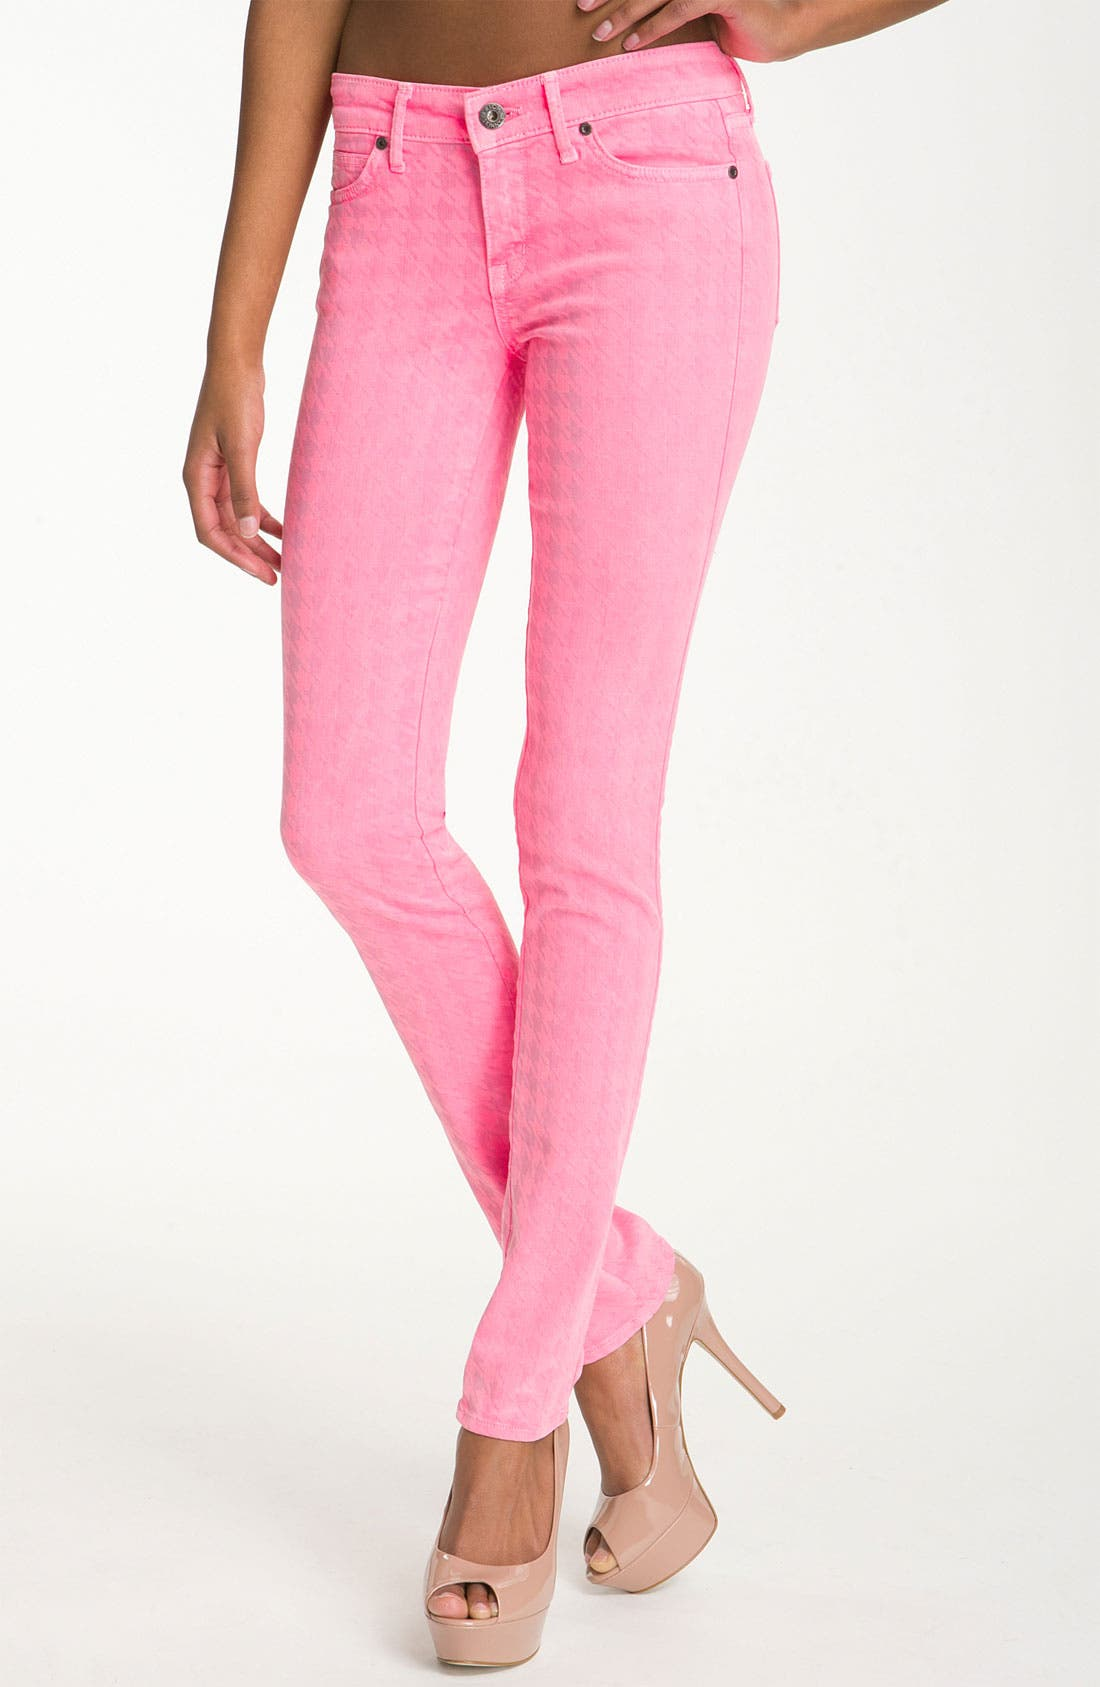 Alternate Image 1 Selected - Rich & Skinny 'Legacy' Houndstooth Print Skinny Jeans (Neon Pink)